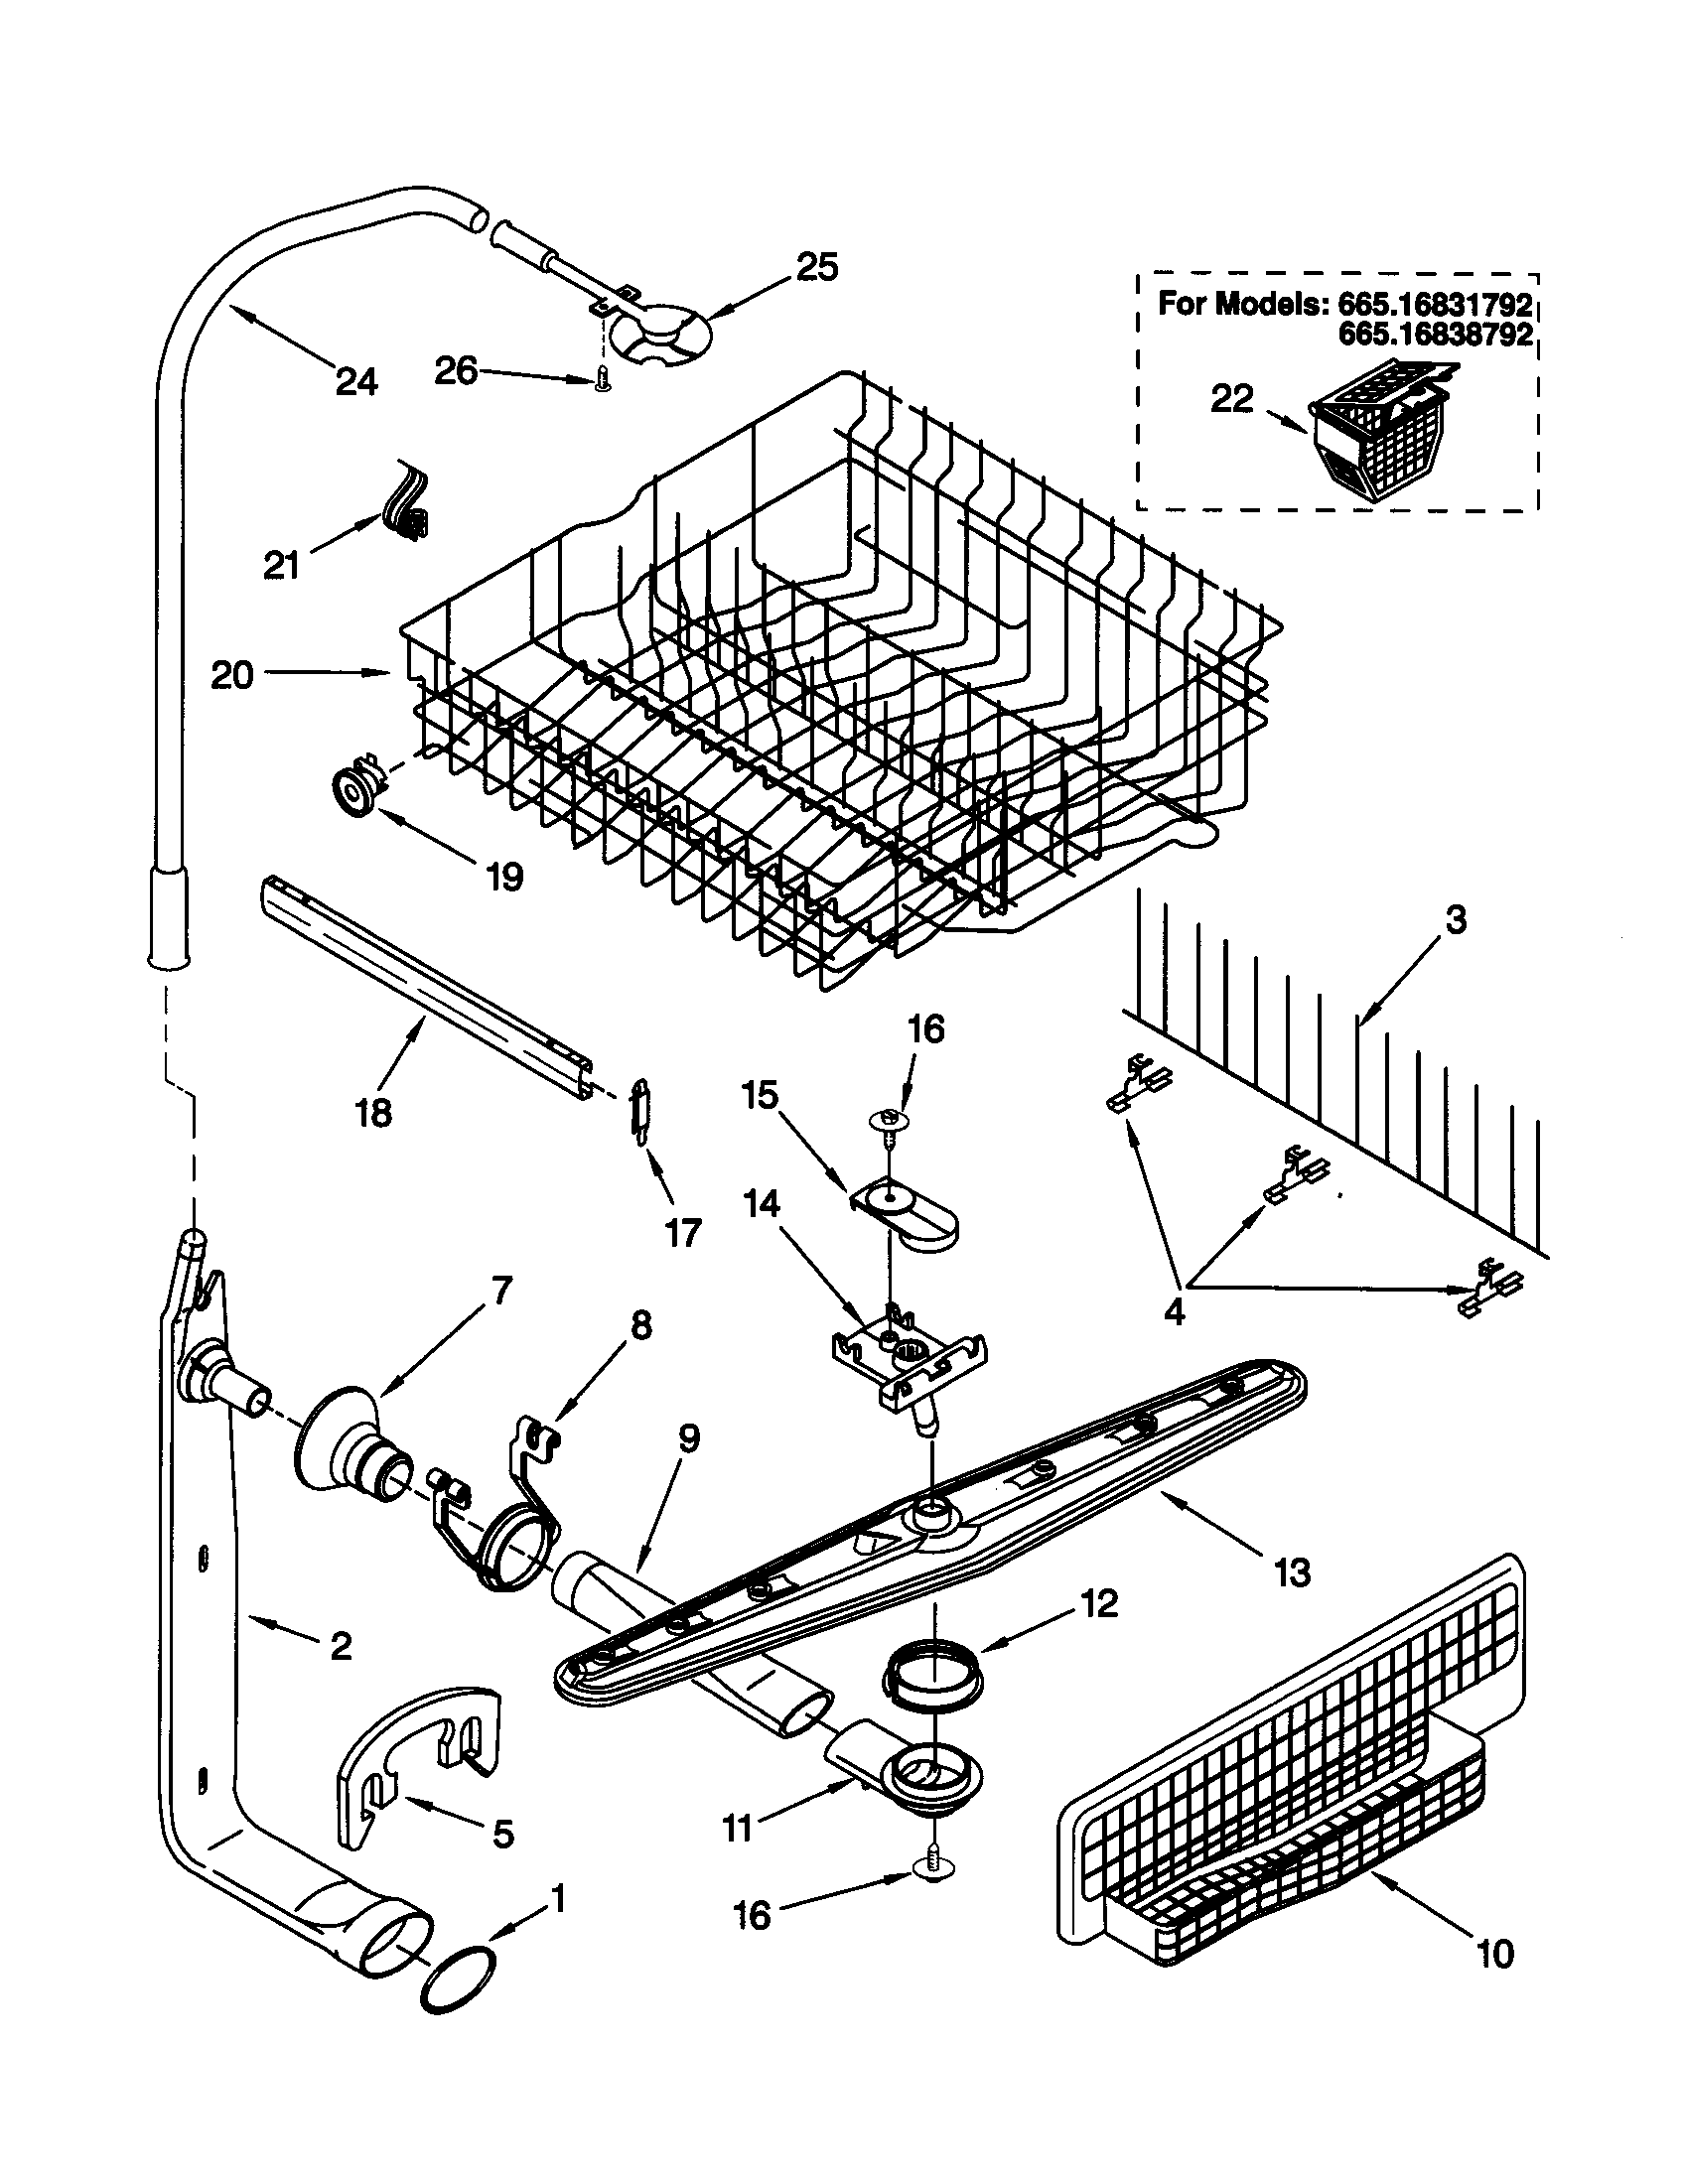 UPPER DISHRACK AND WATER FEED Diagram & Parts List for